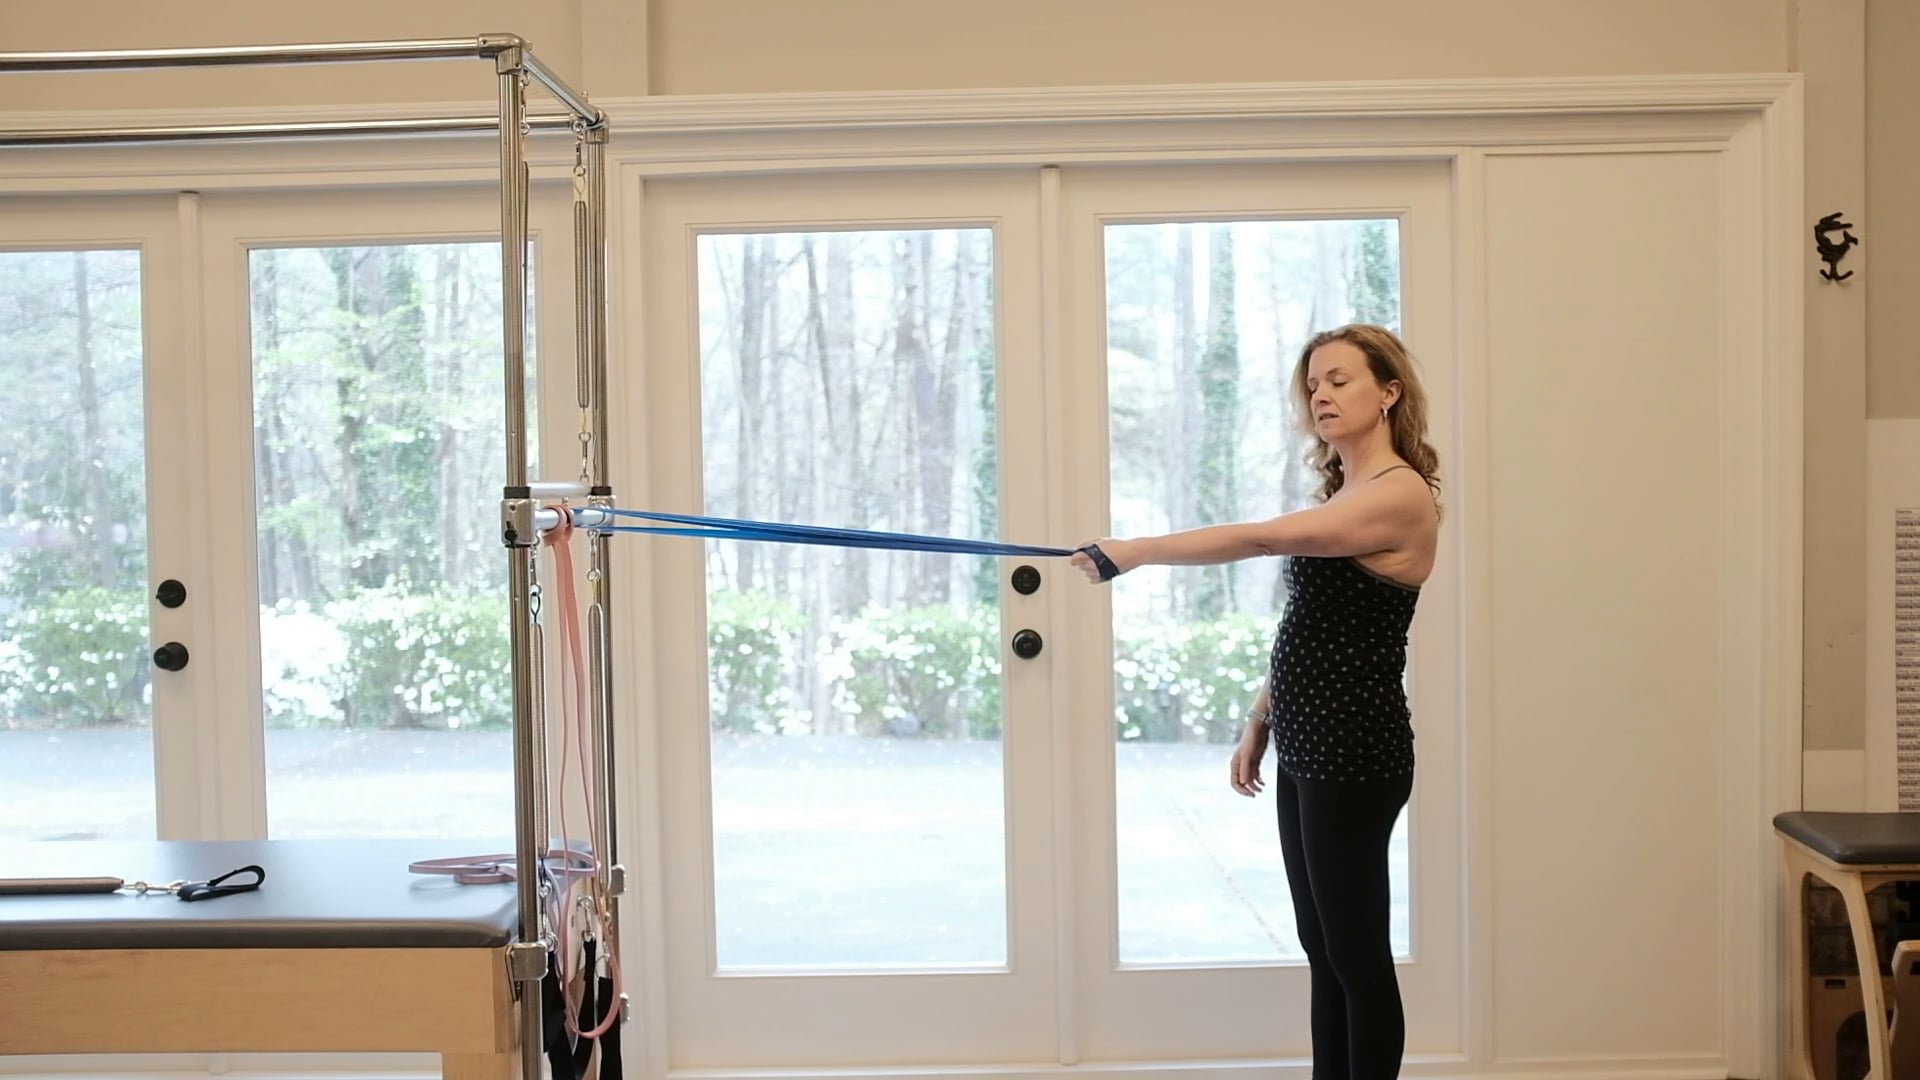 Shoulder mobility with Band